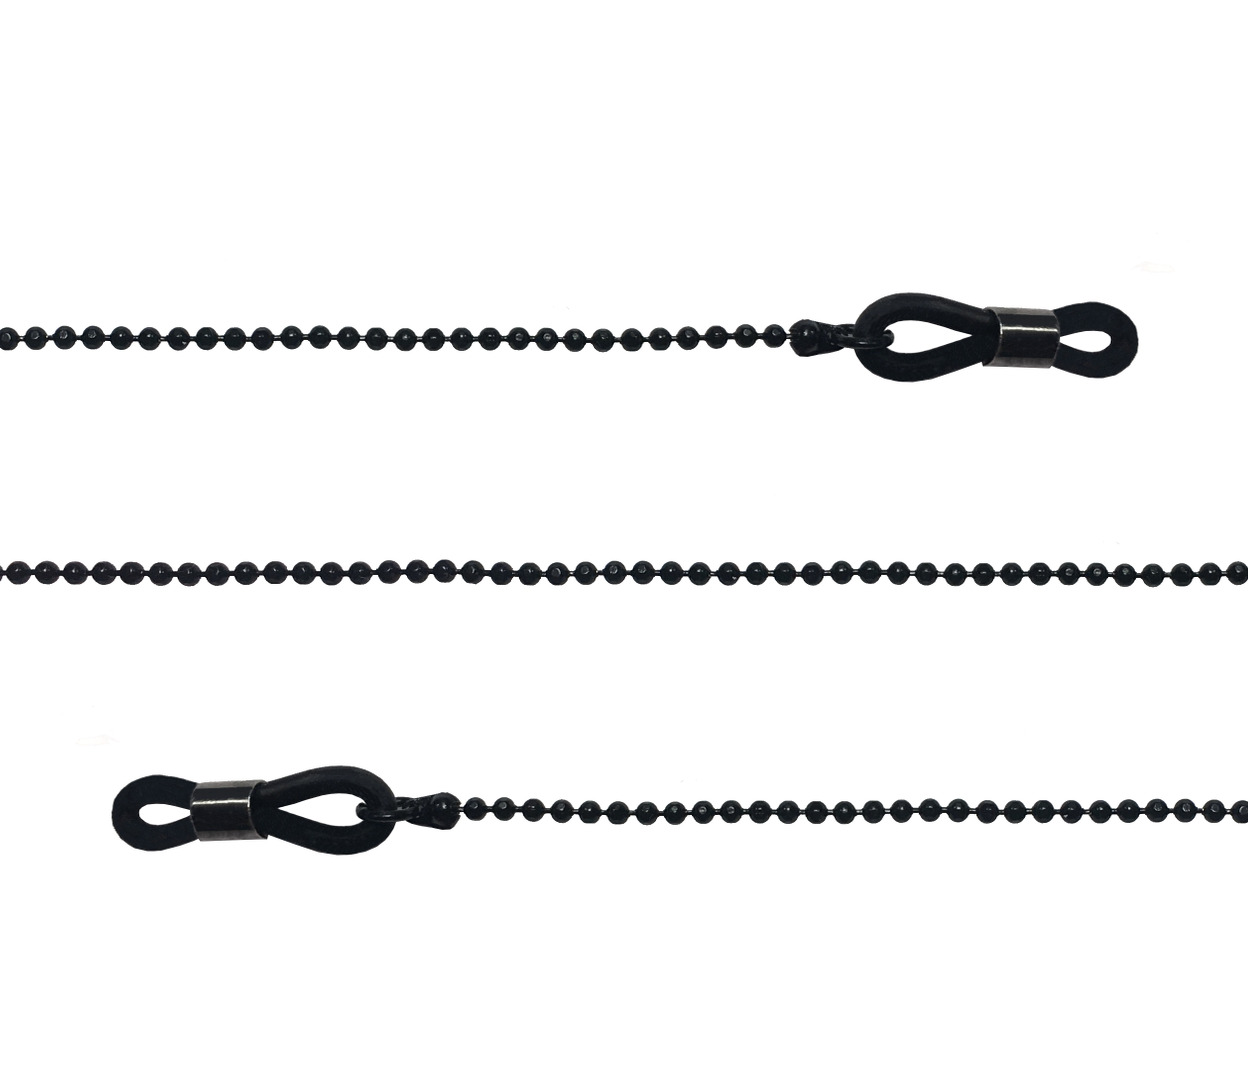 Main Image (Angle) - Link (Black) Glasses Chains Accessories